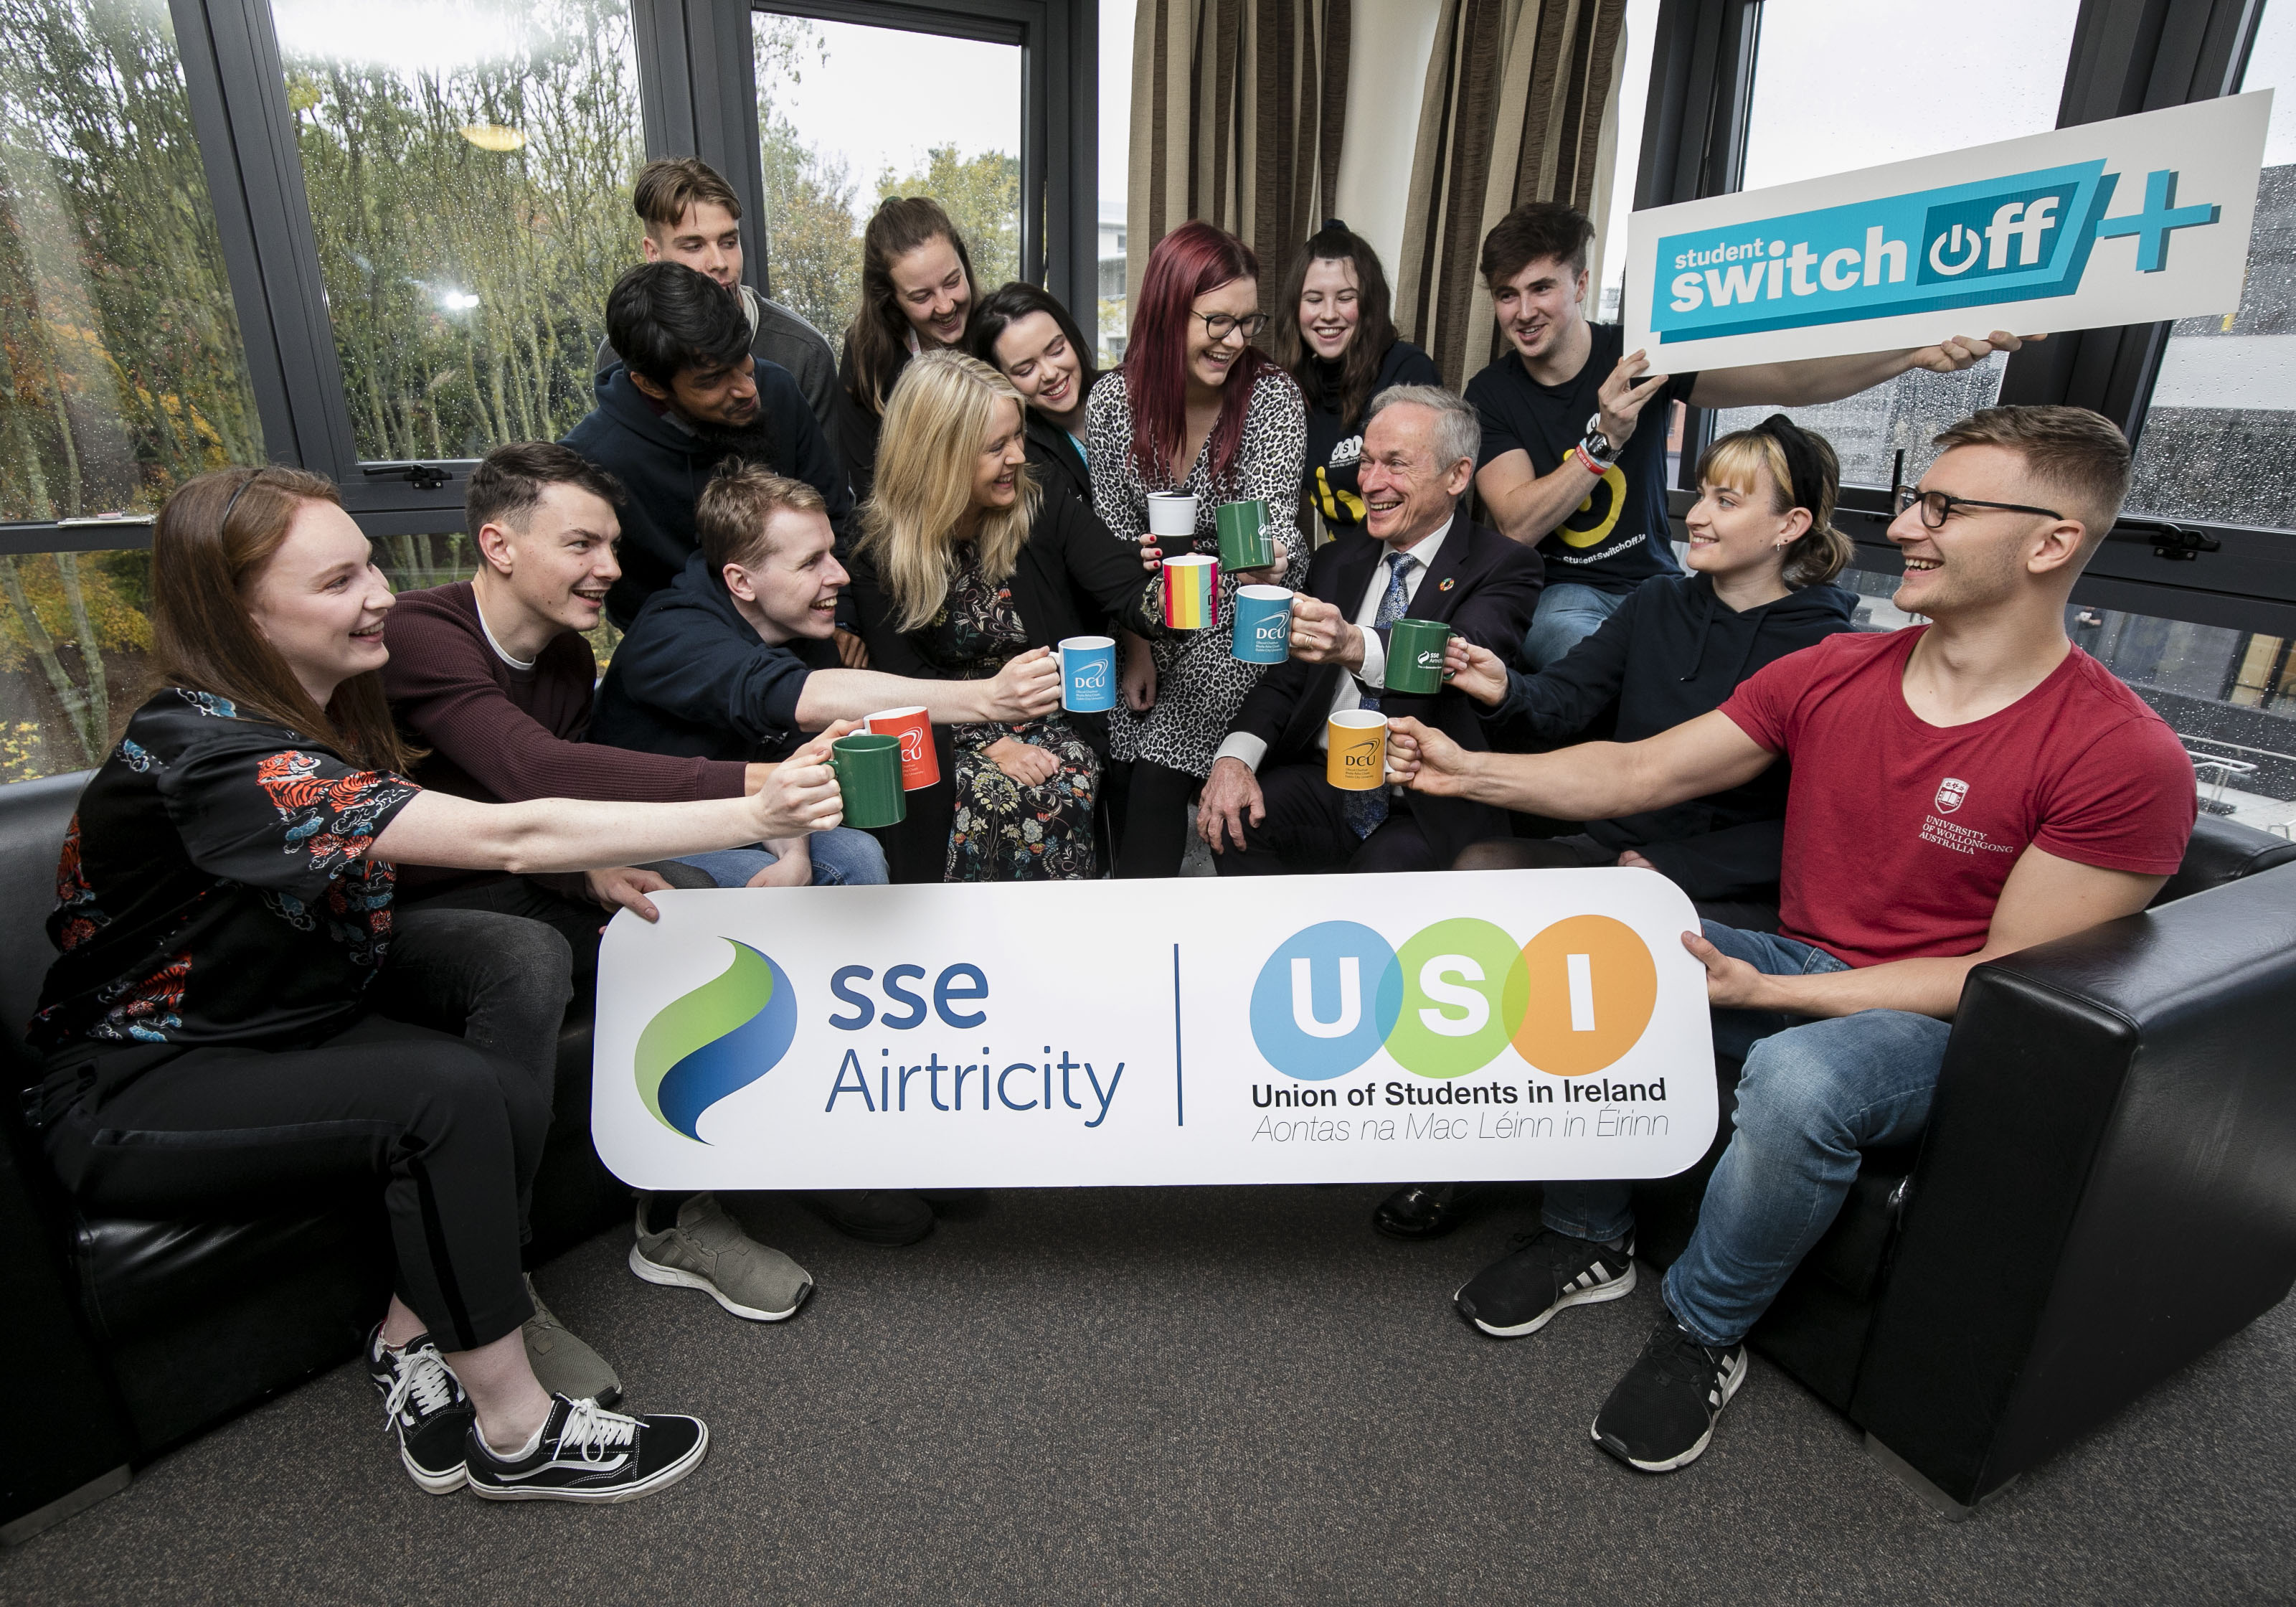 Minister Bruton Launches USI 21 Day Challenge with a Smart Brew